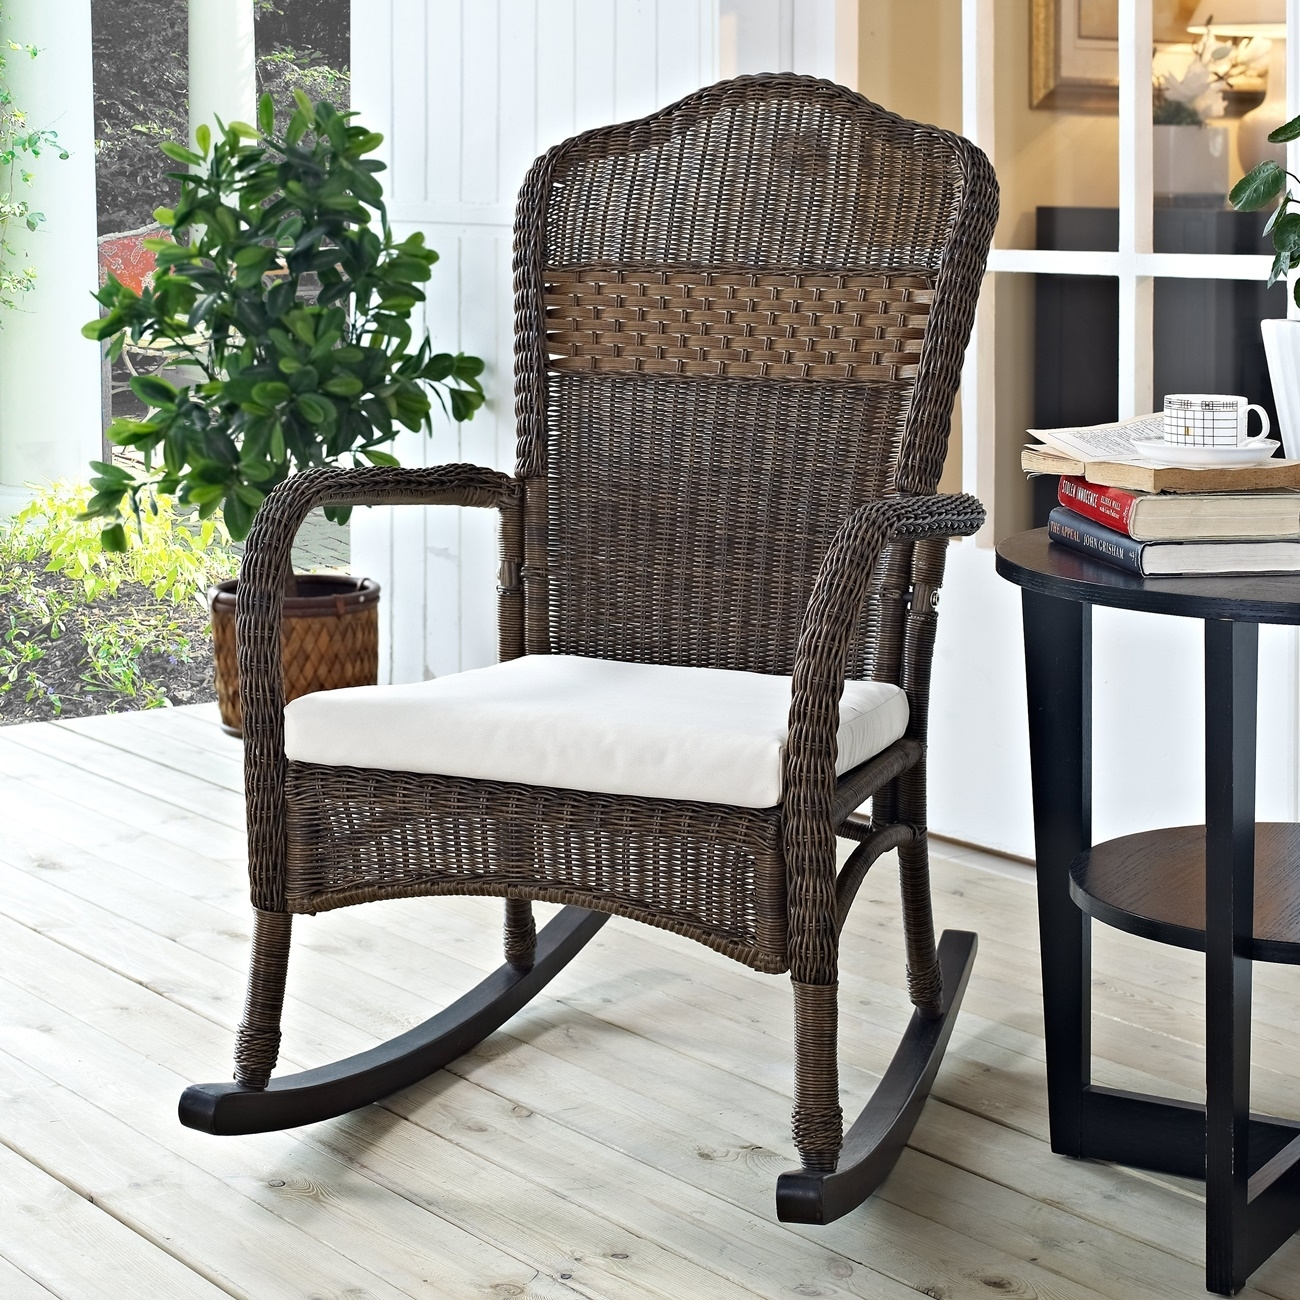 Awesome Patio Rocking Chair — Wilson Home Ideas : Choosing A Patio For Padded Patio Rocking Chairs (#3 of 15)